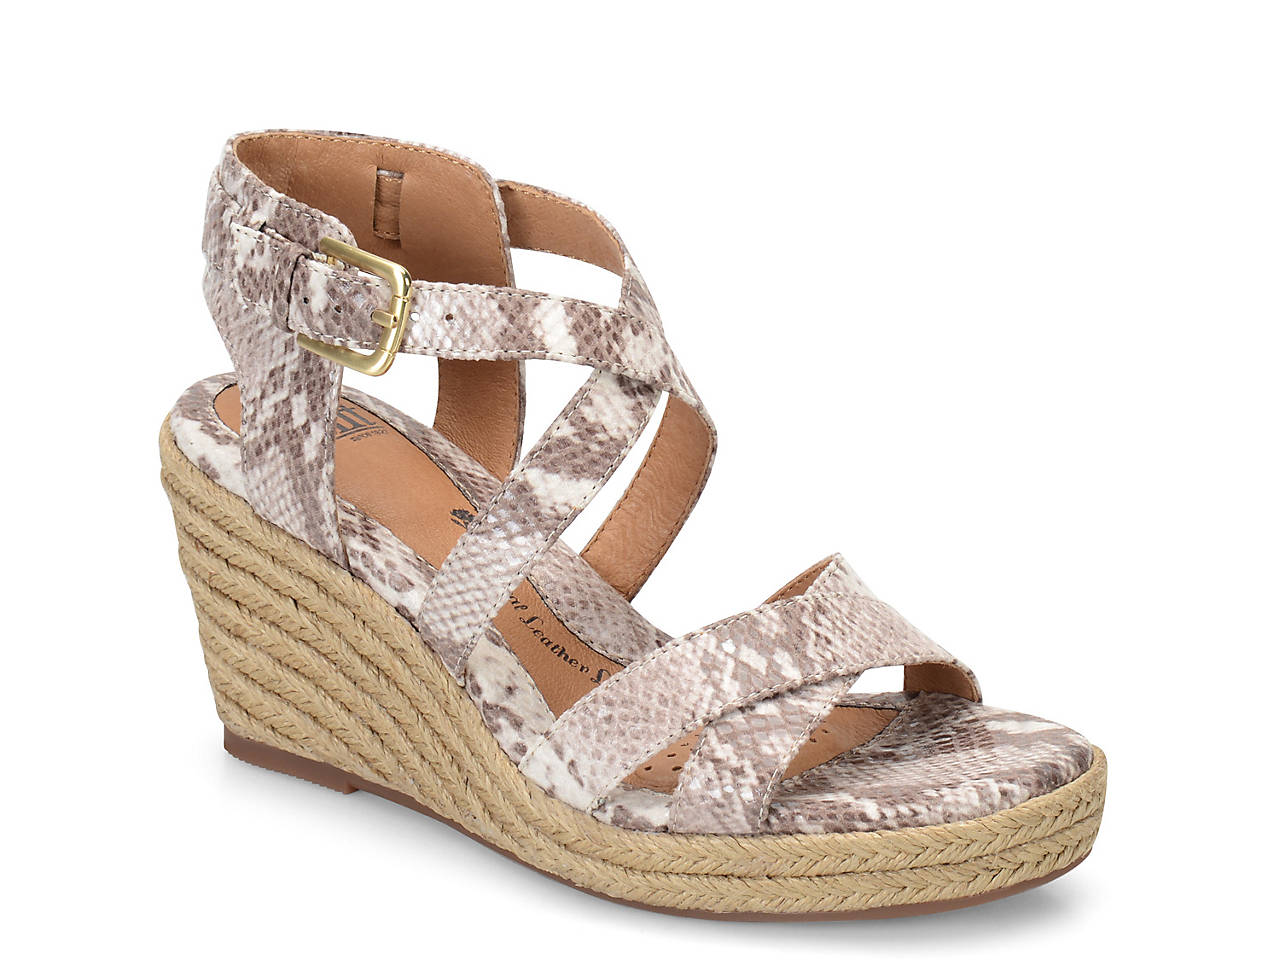 77bc5755852f Sofft Inez Wedge Sandal Women s Shoes